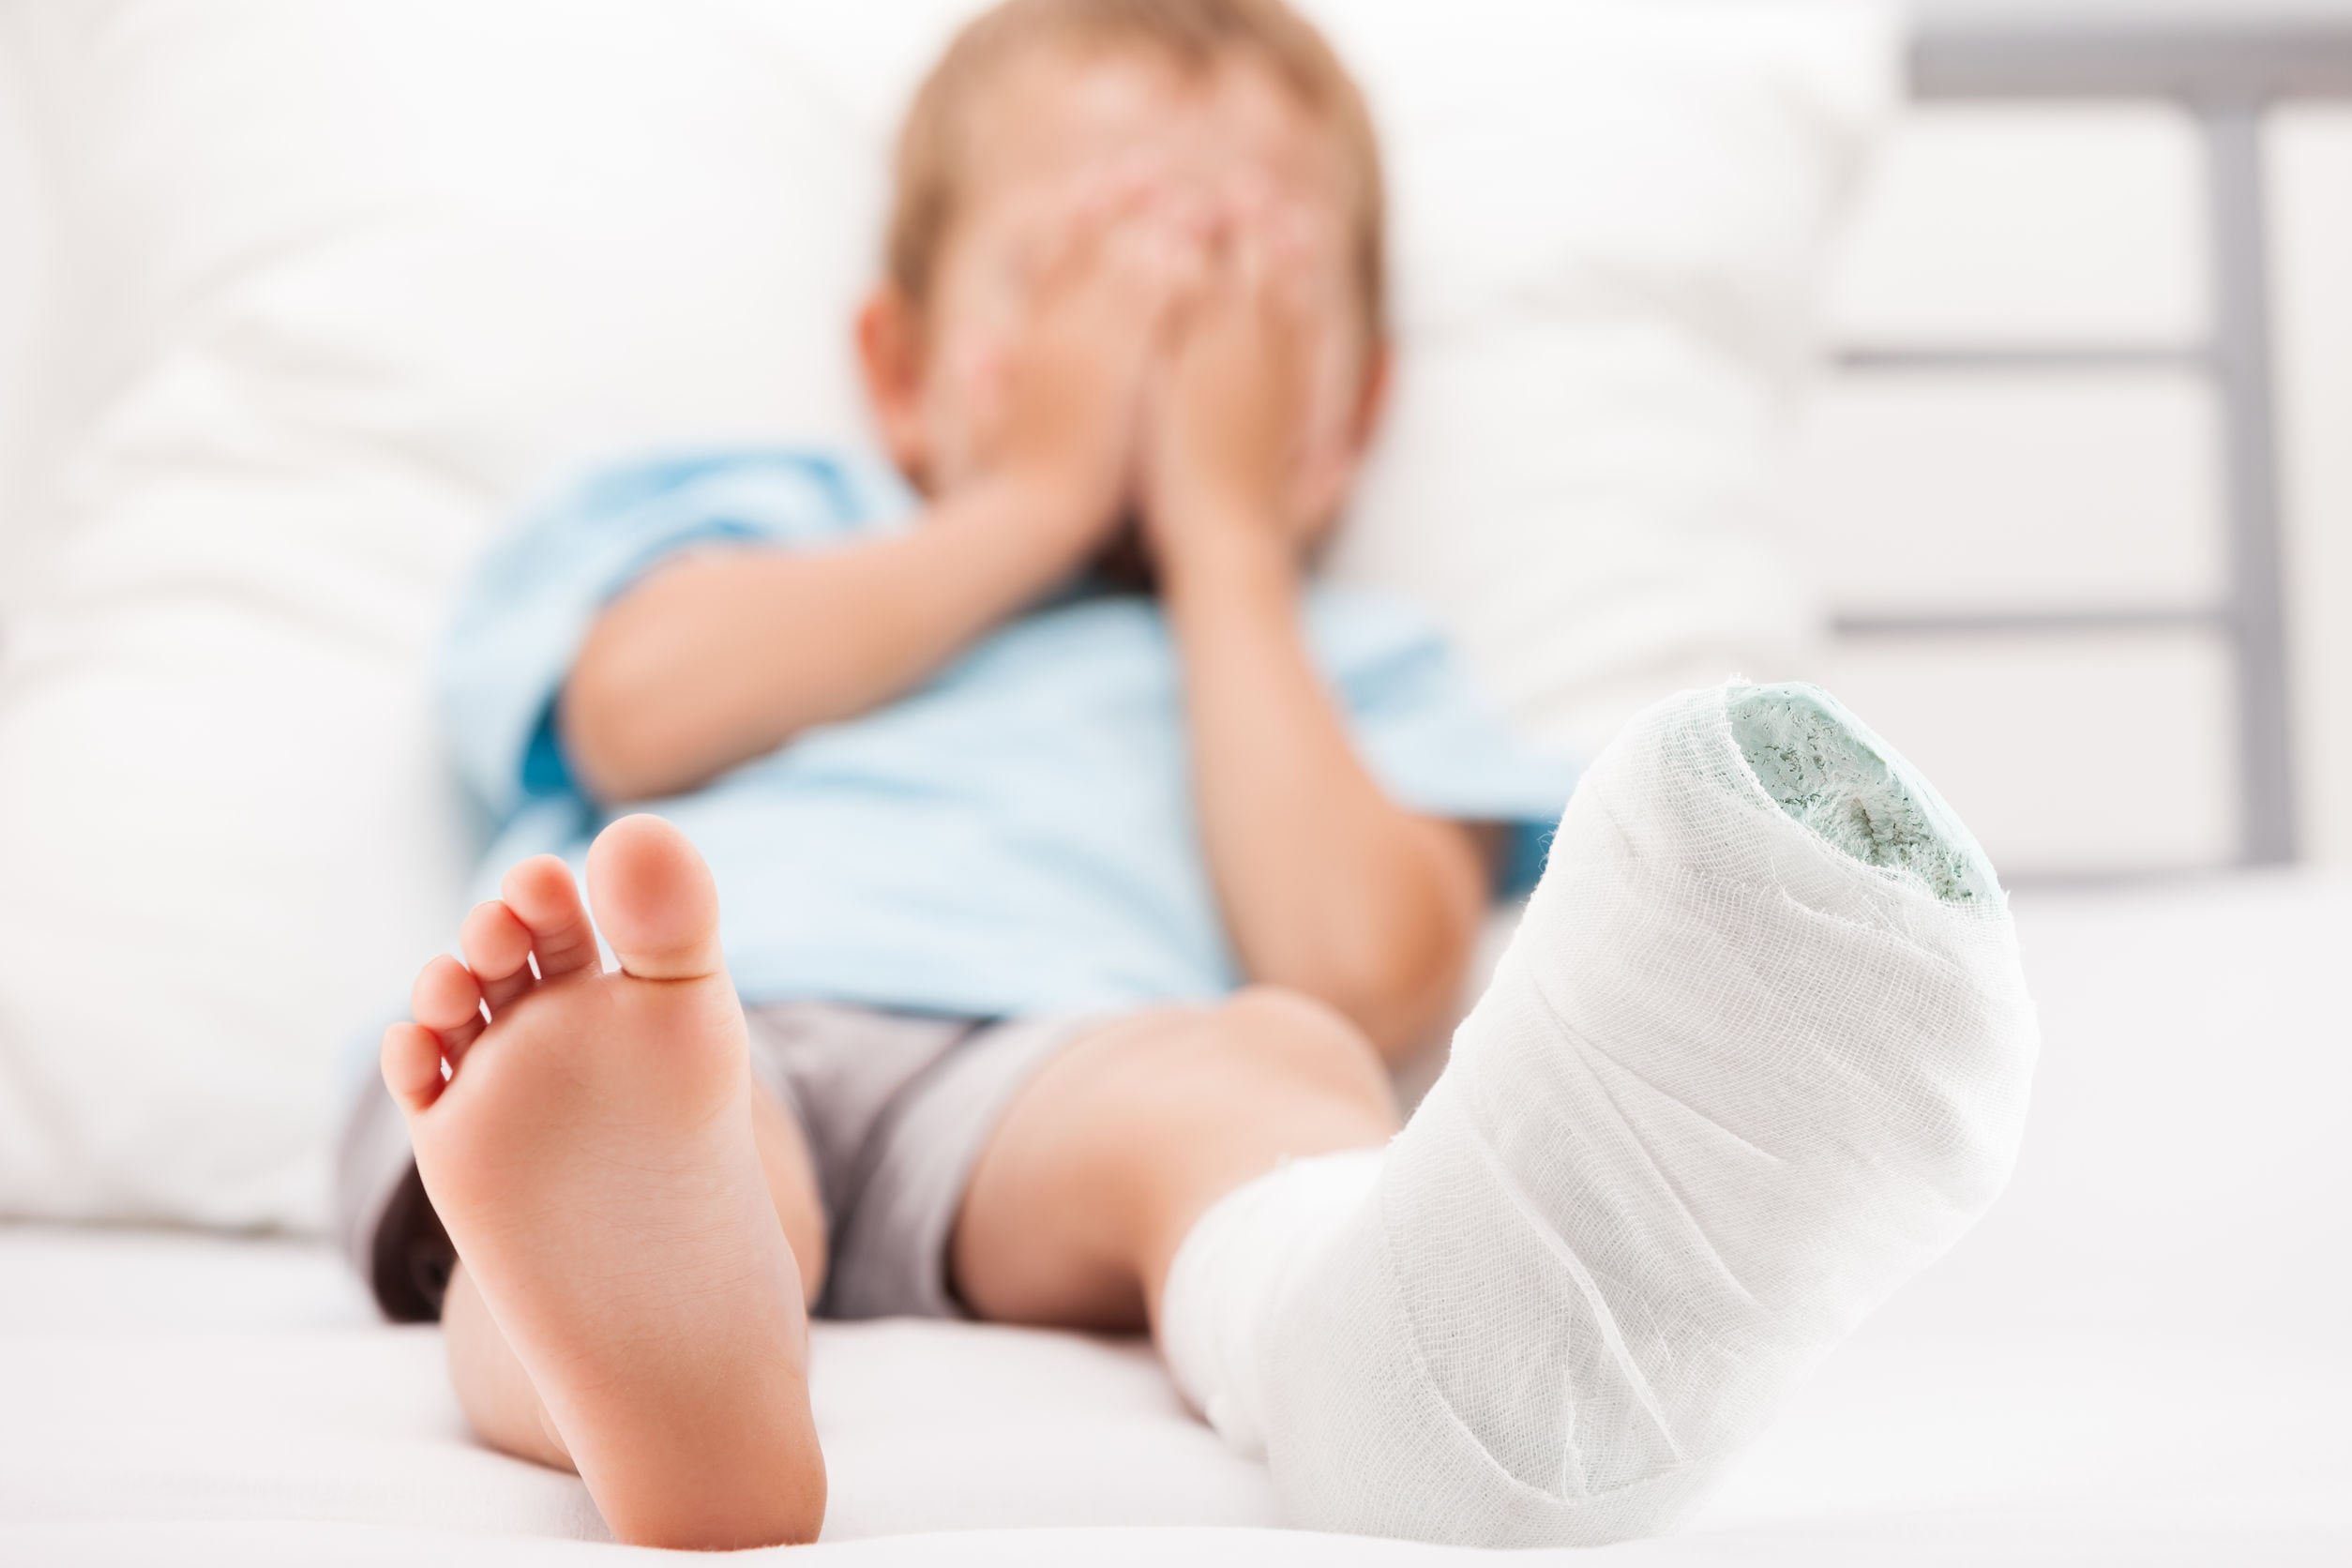 Florida Parents: Protect Your Kids from These Common Holiday Injuries